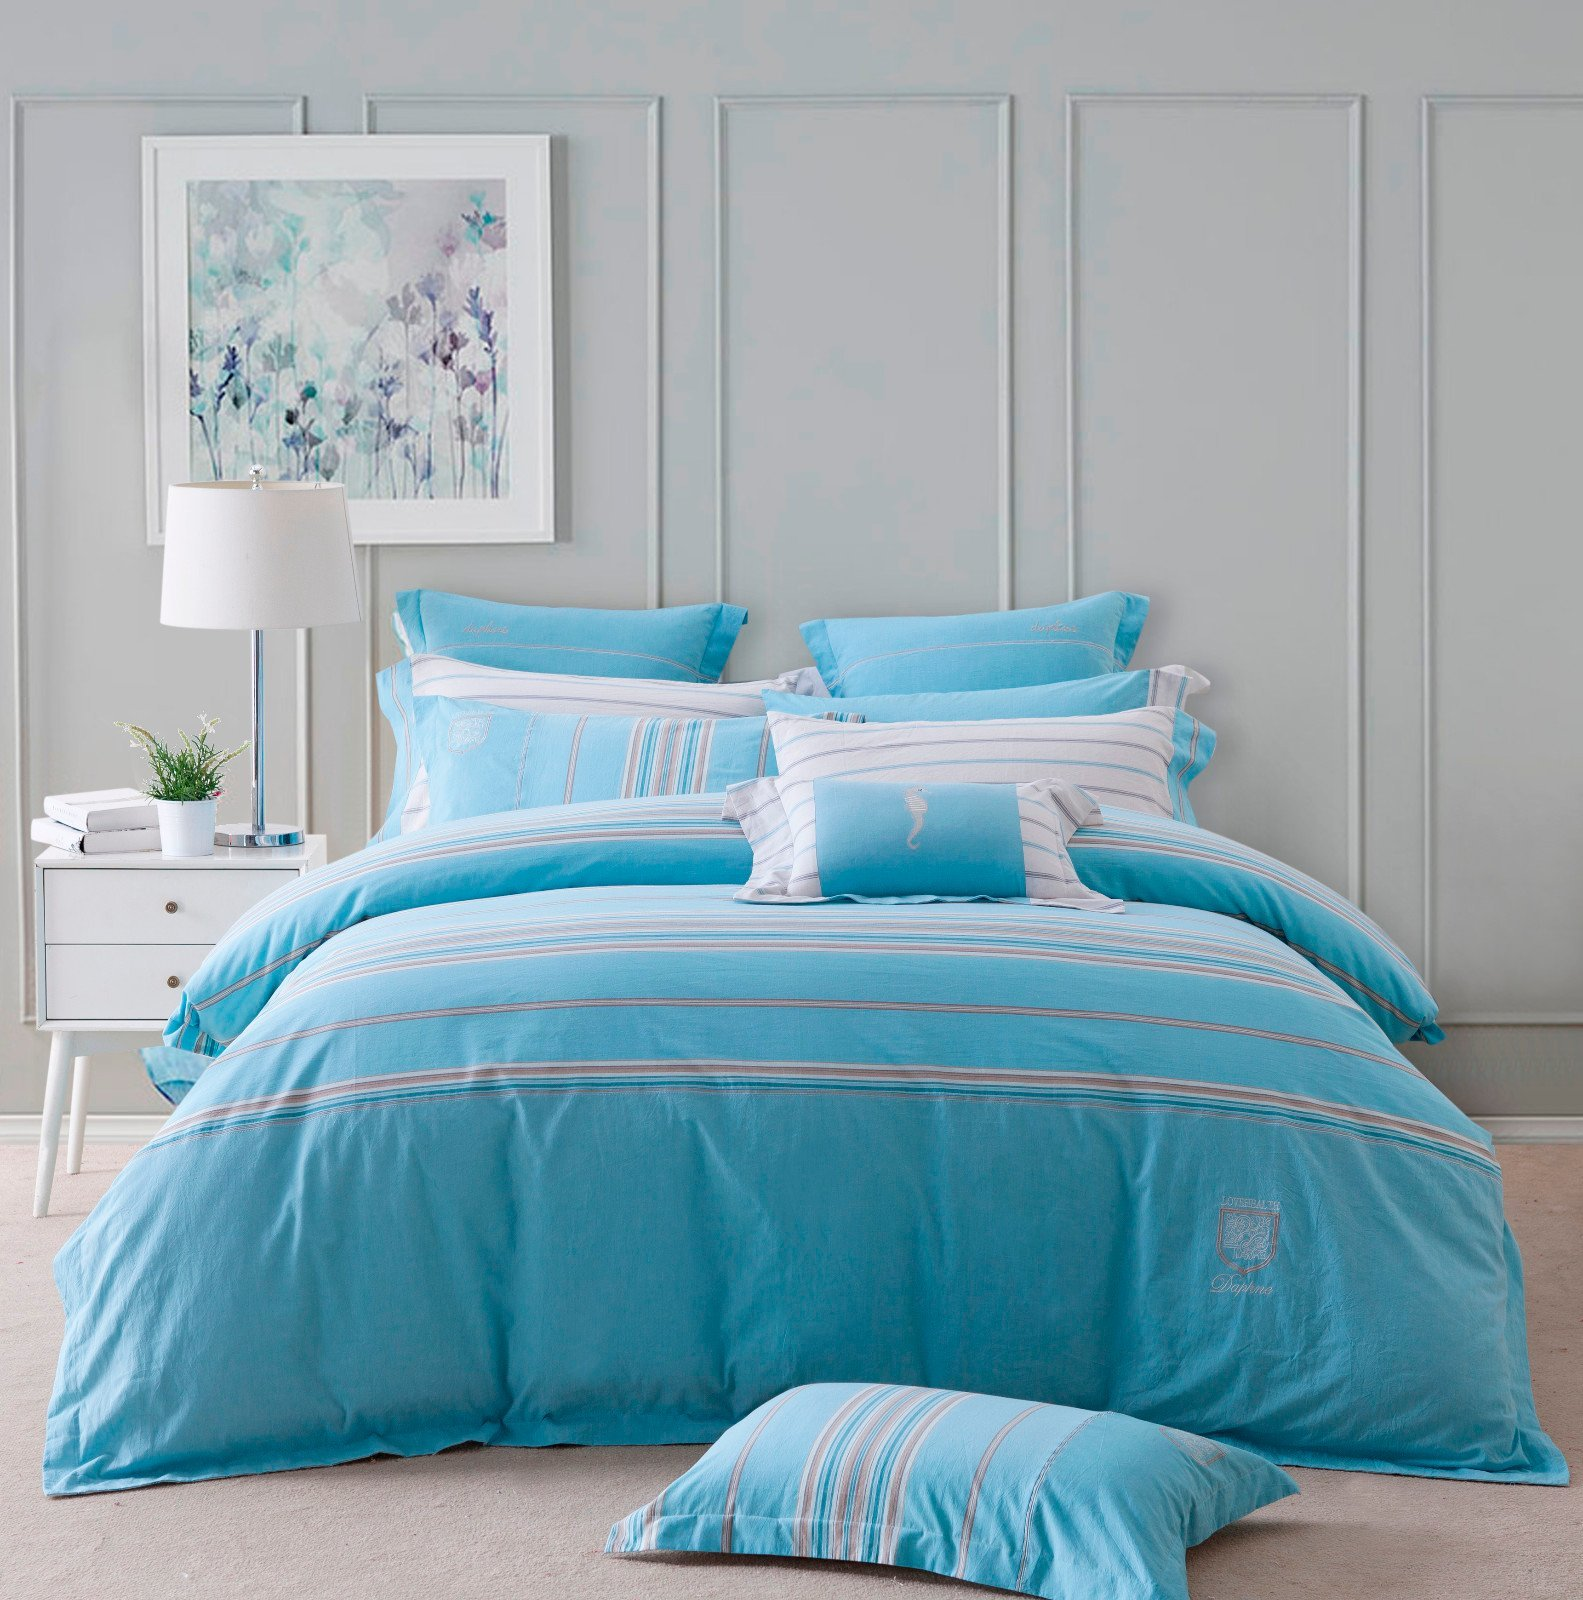 DAPHNE Cotton Elegant Print Bed Linen #6857